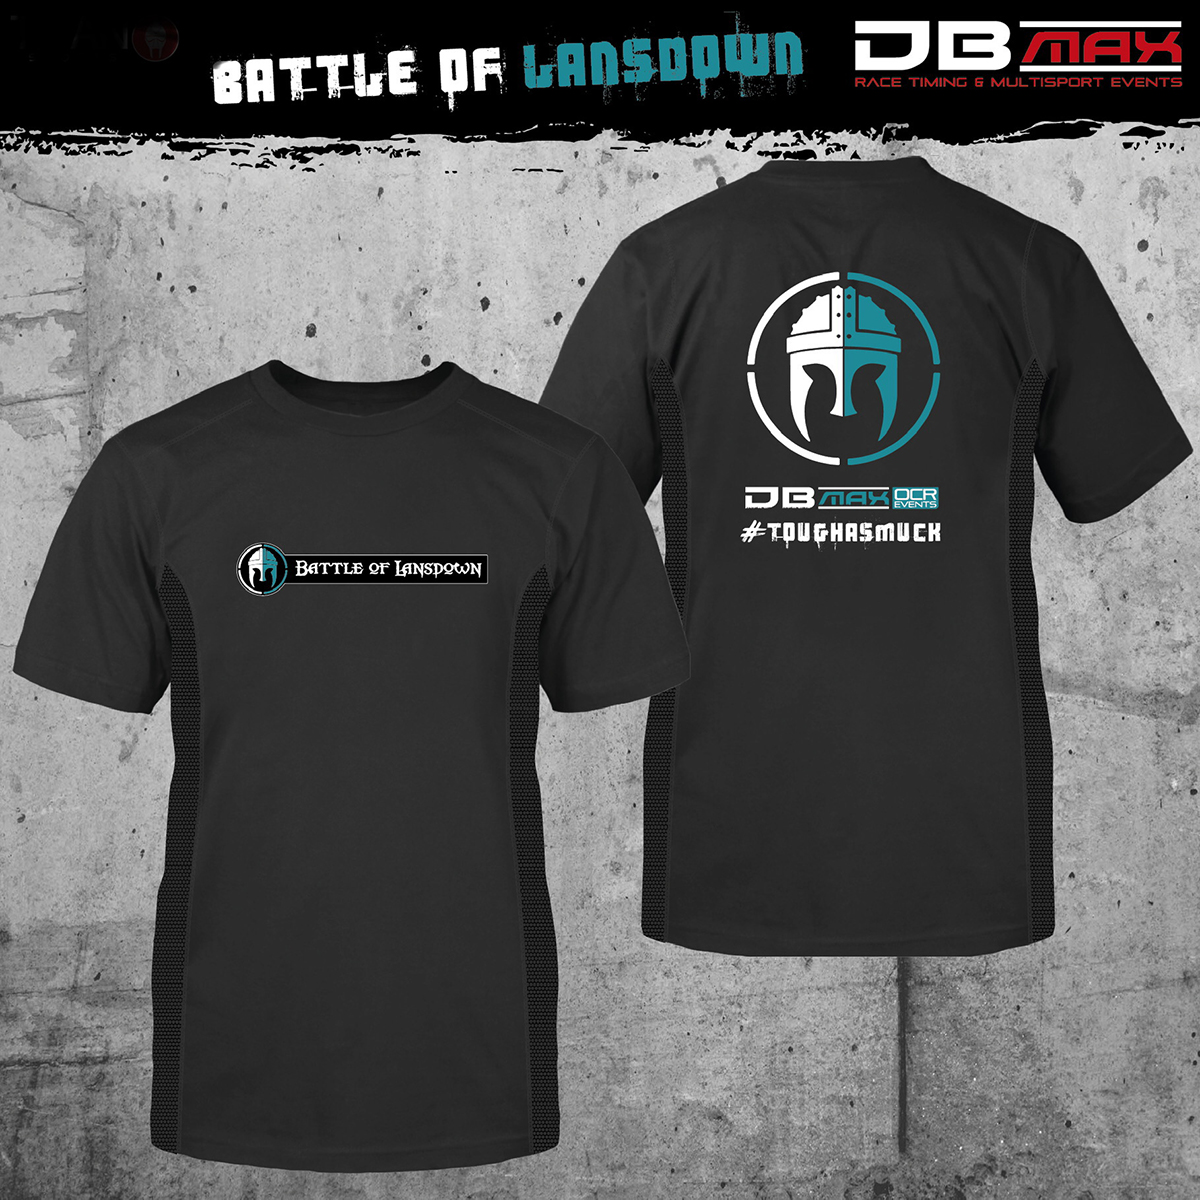 Battle of Lansdown 2020 T-shirt